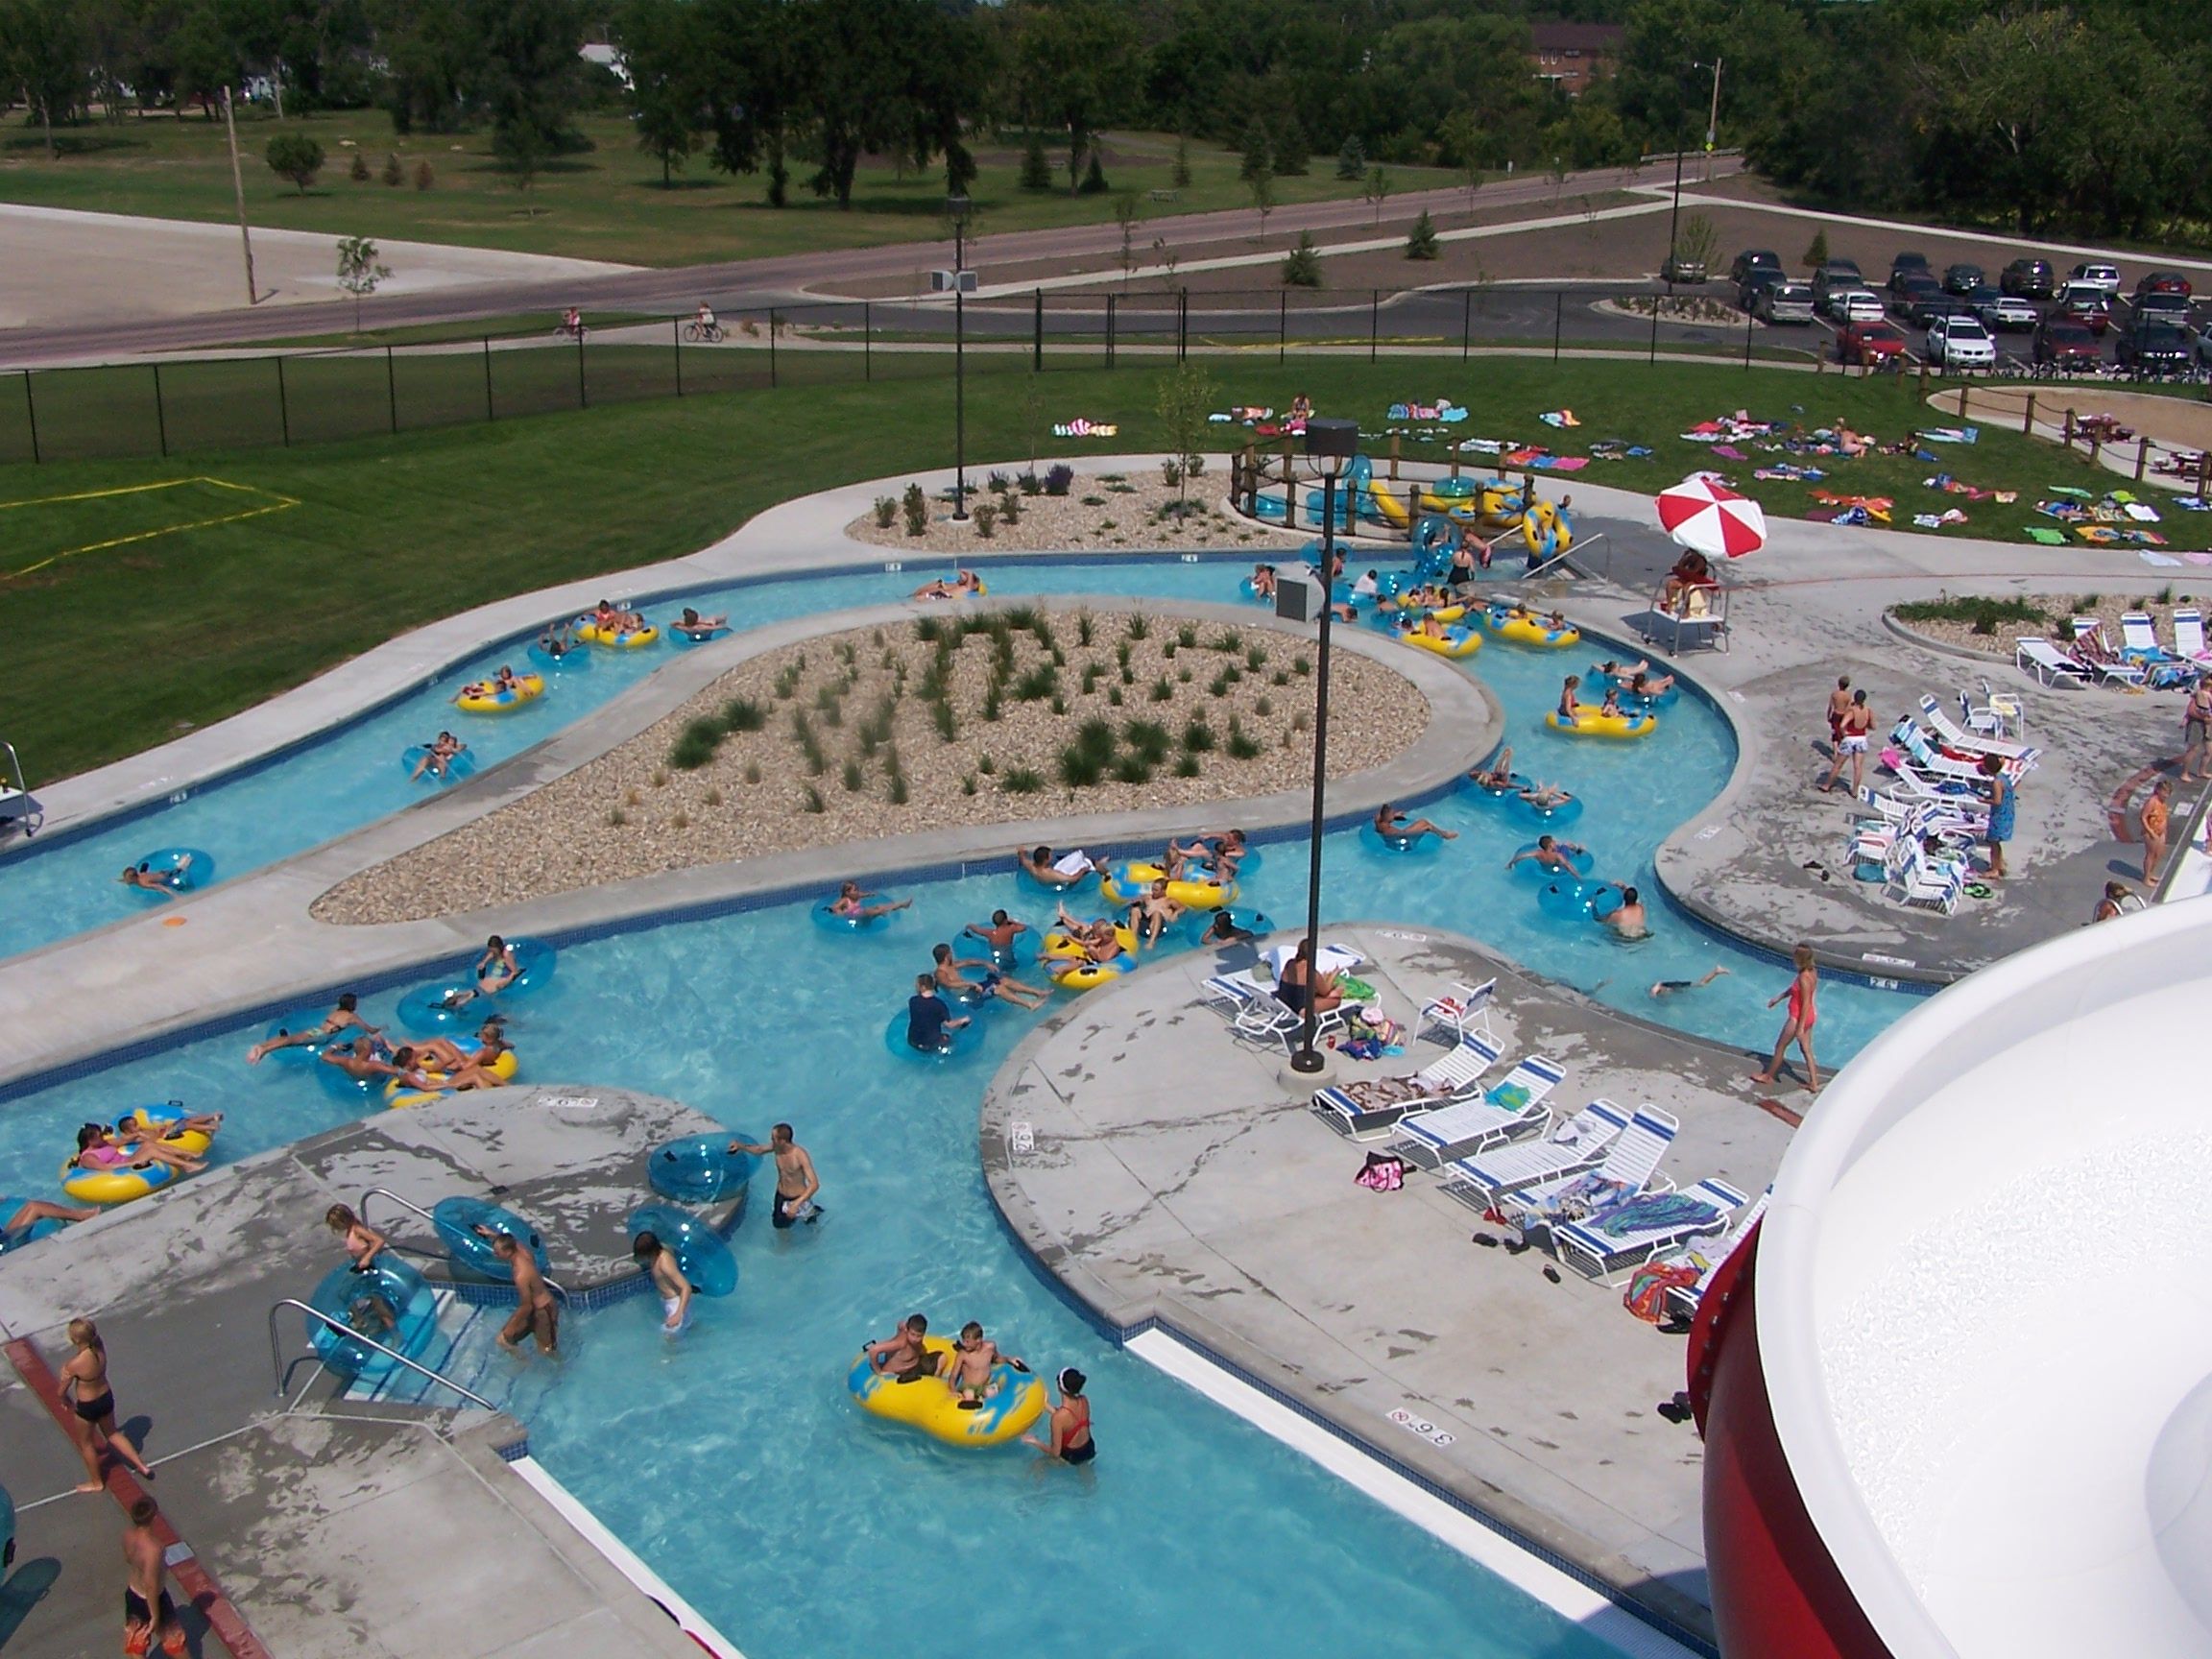 Aquatic Center Pool